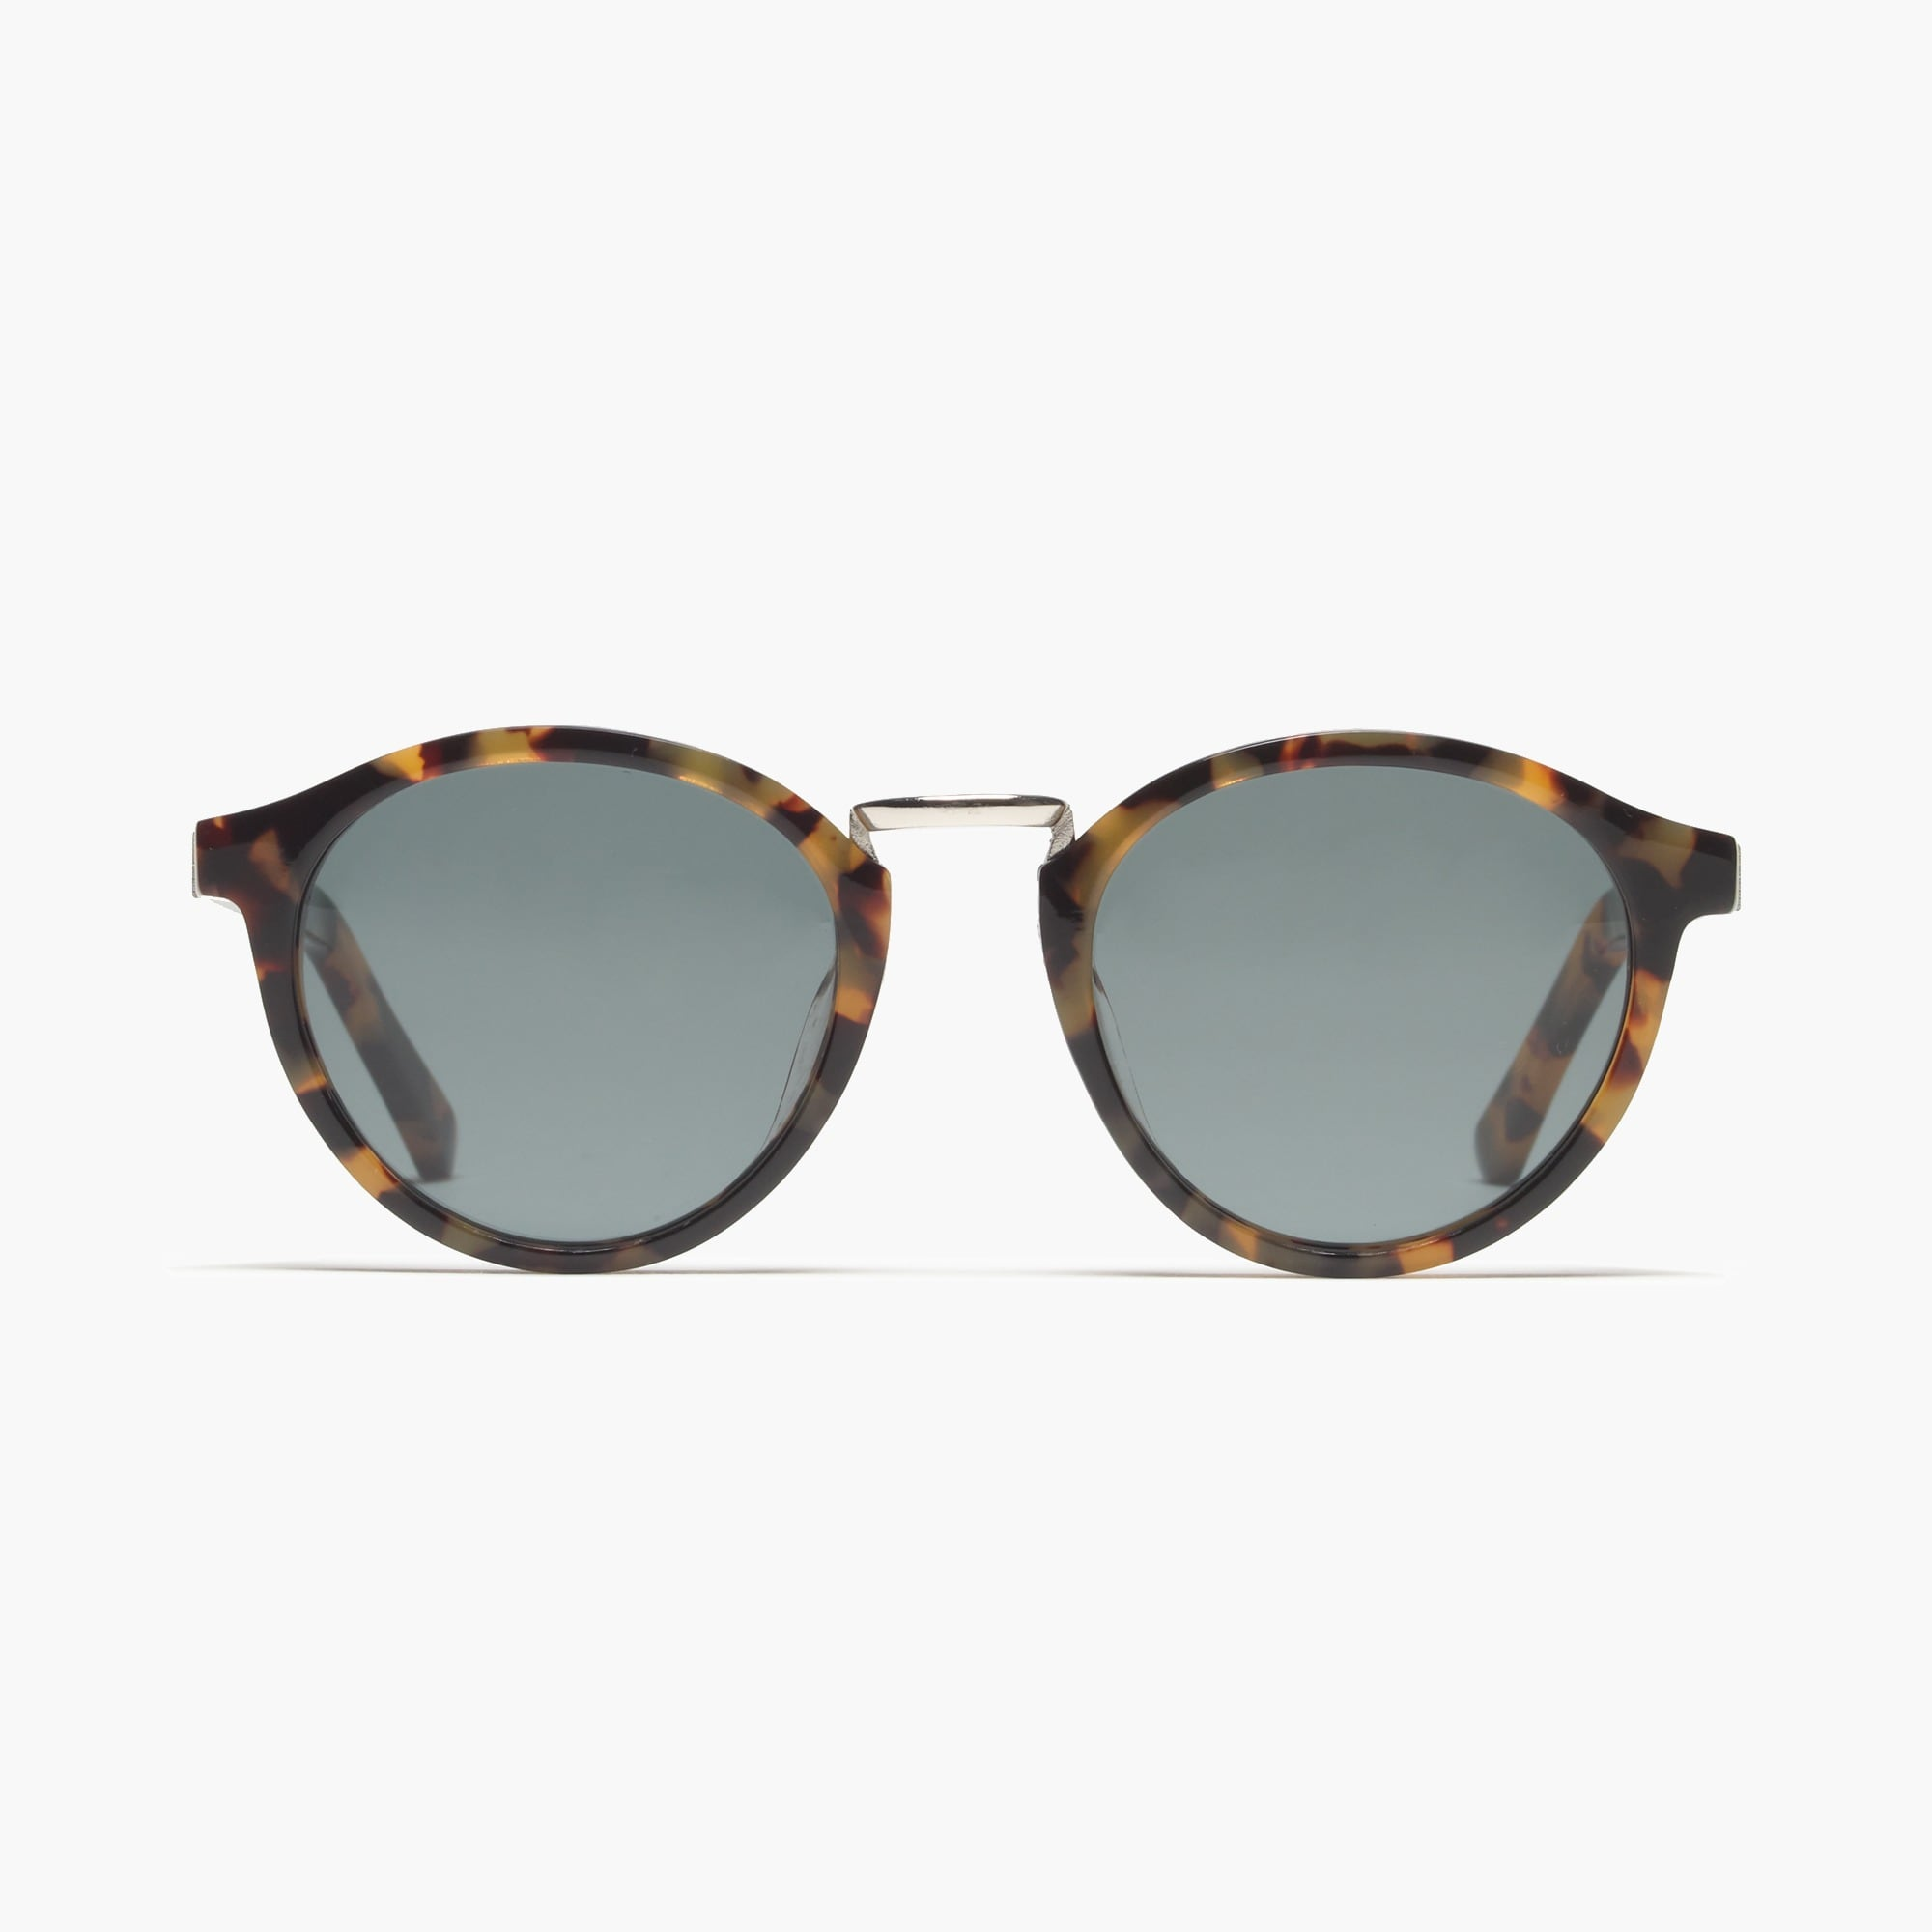 Madewell indio sunglasses women j.crew in good company c